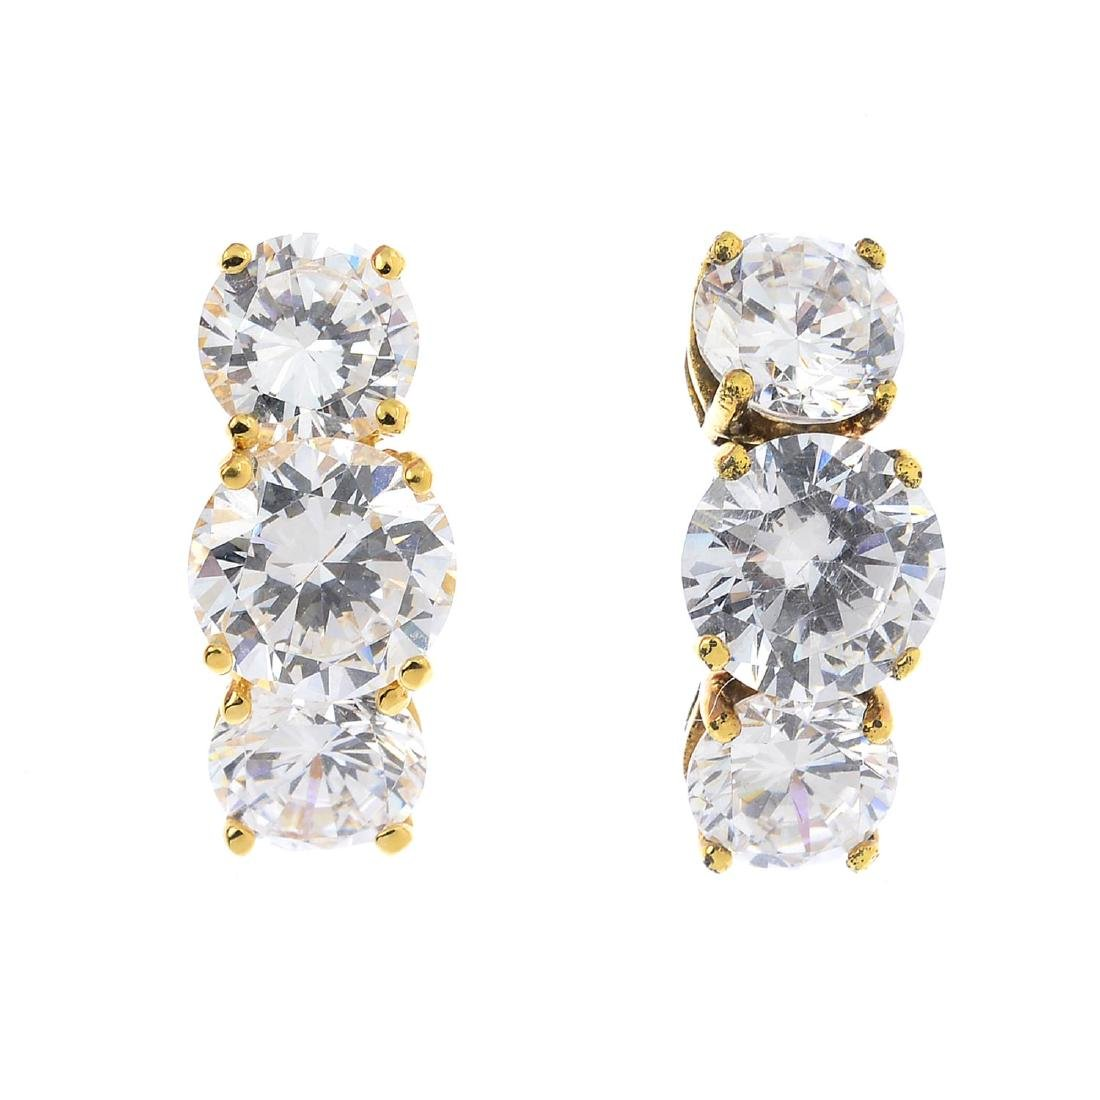 A pair of cubic zirconia earrings. Each designed as a